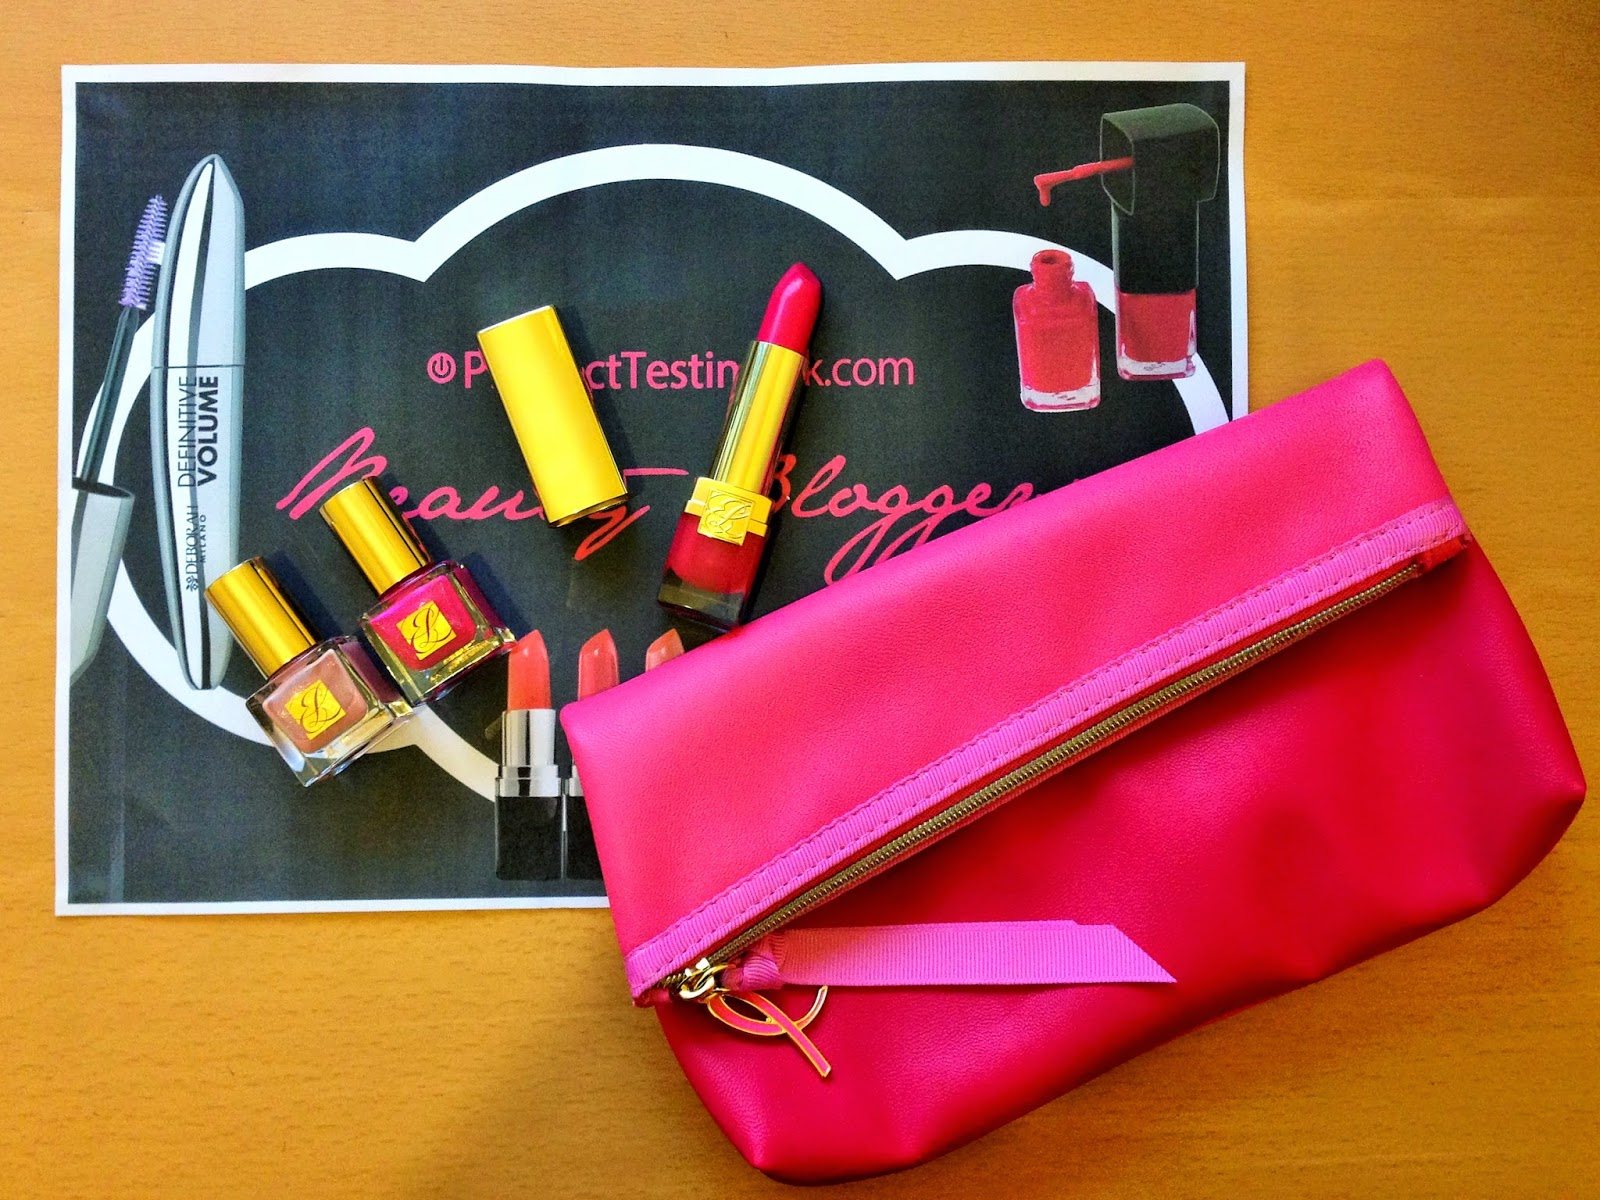 Estee Lauder Dream Pink Collection for Breast Cancer Awareness